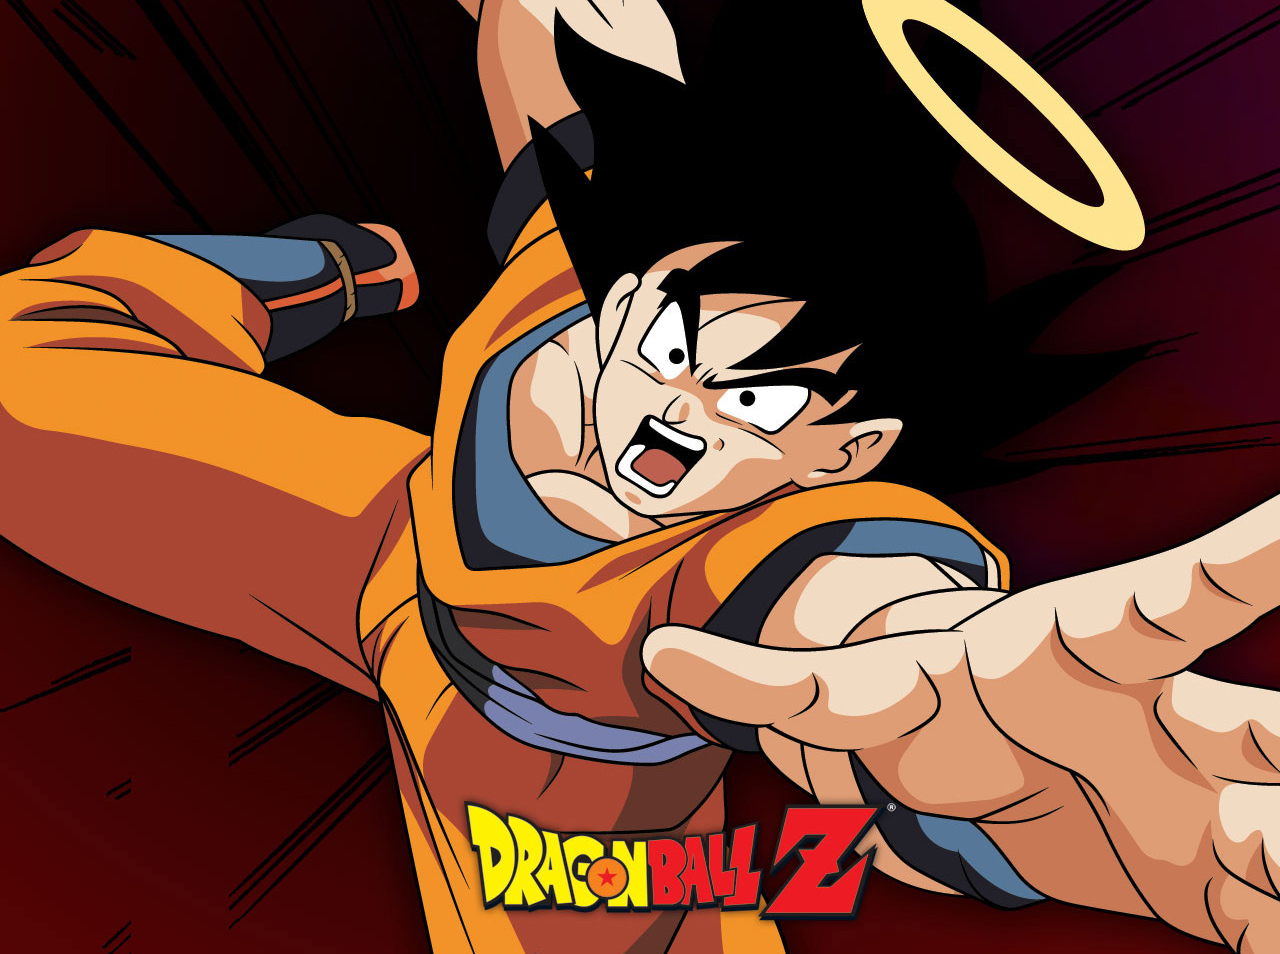 Son goku dragon ball image - Dragon ball z goku son ...